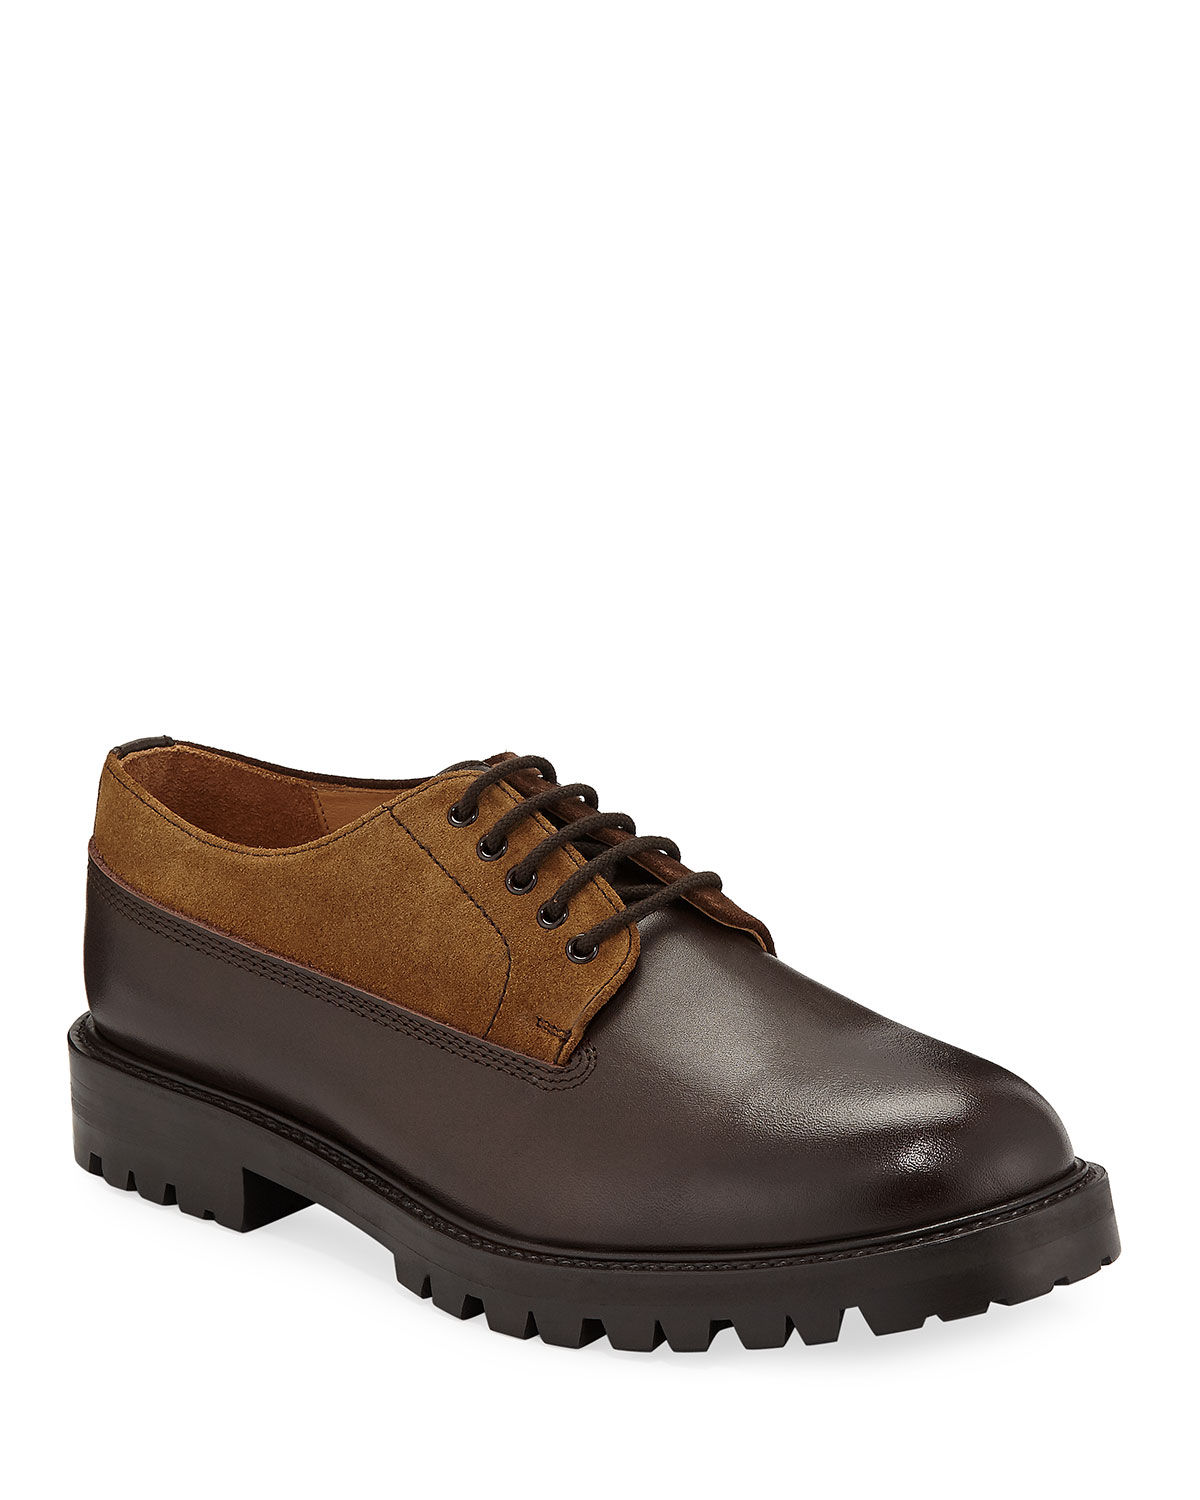 HENDER SCHEME Percy Leather & Suede Lace-Up Shoes in Brown